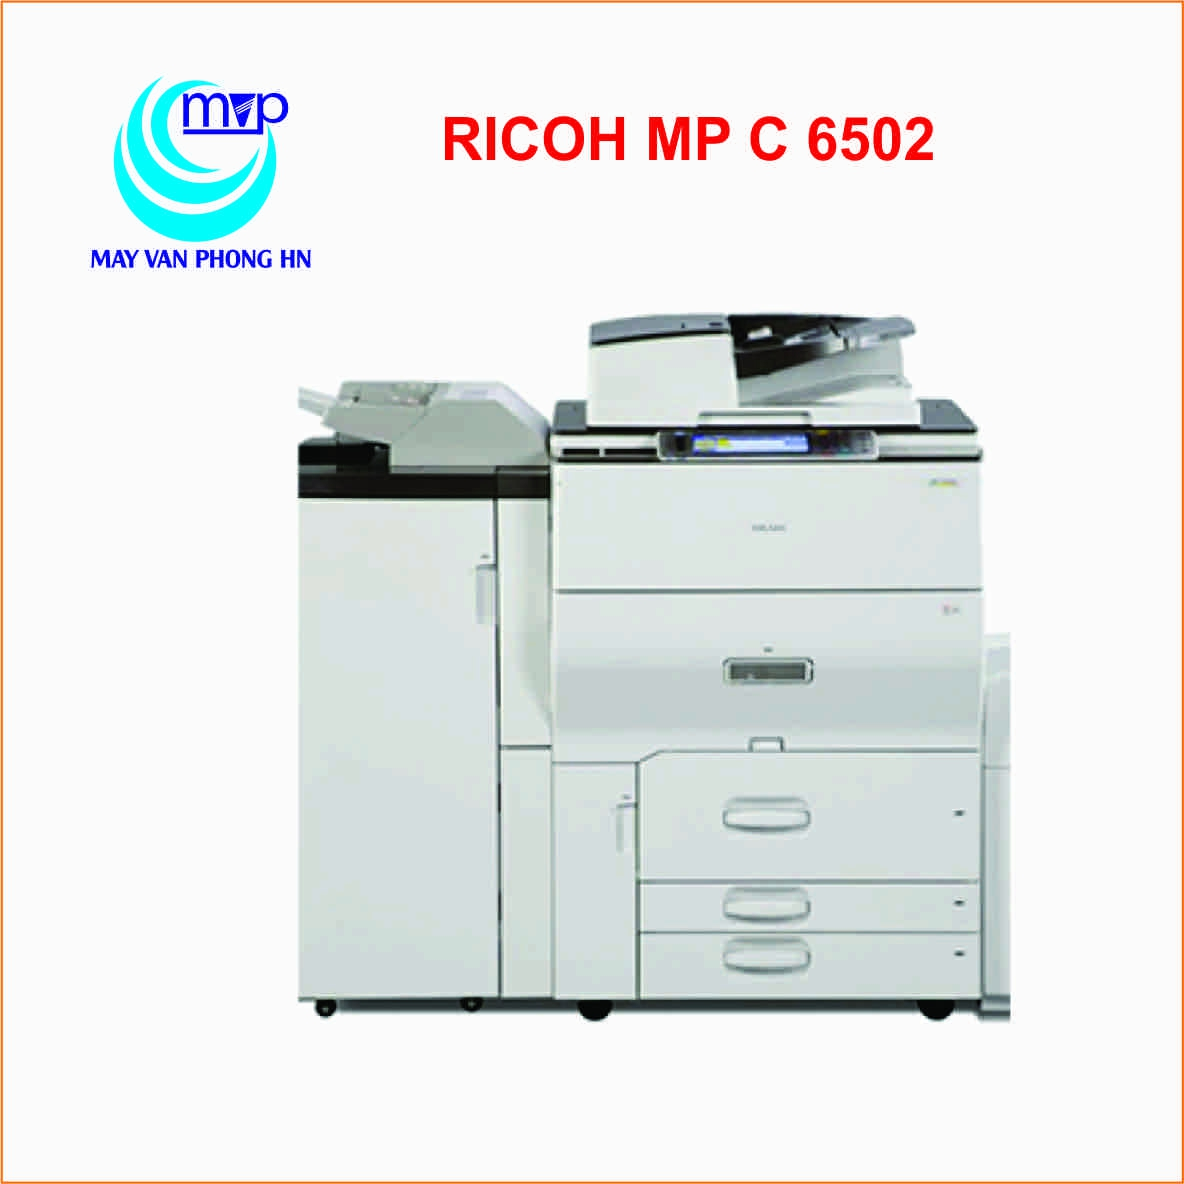 RICOH MP C 6502